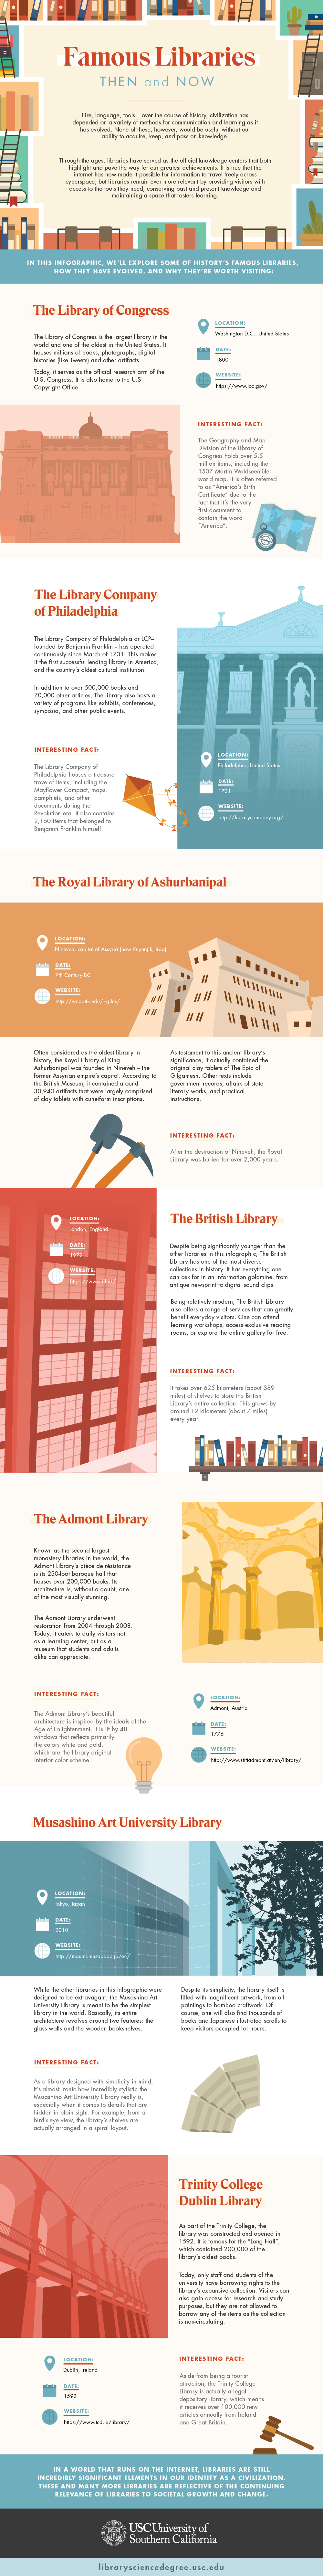 Infographic highlighting famous libraries and what makes each unique